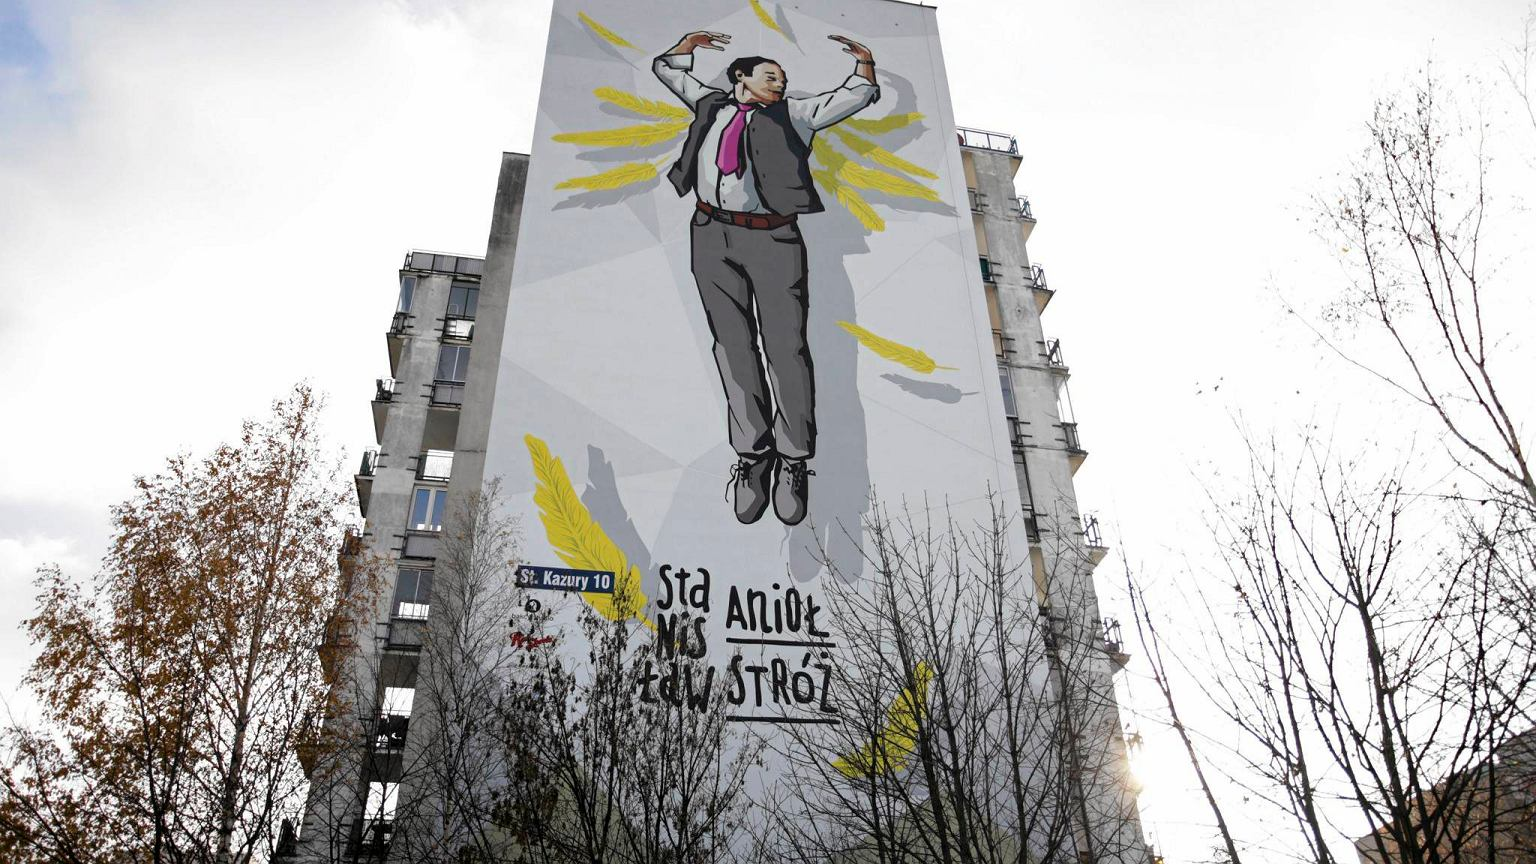 Ods oni to mural ze stanis awem anio em 39 to posta jak for Mural ursynow